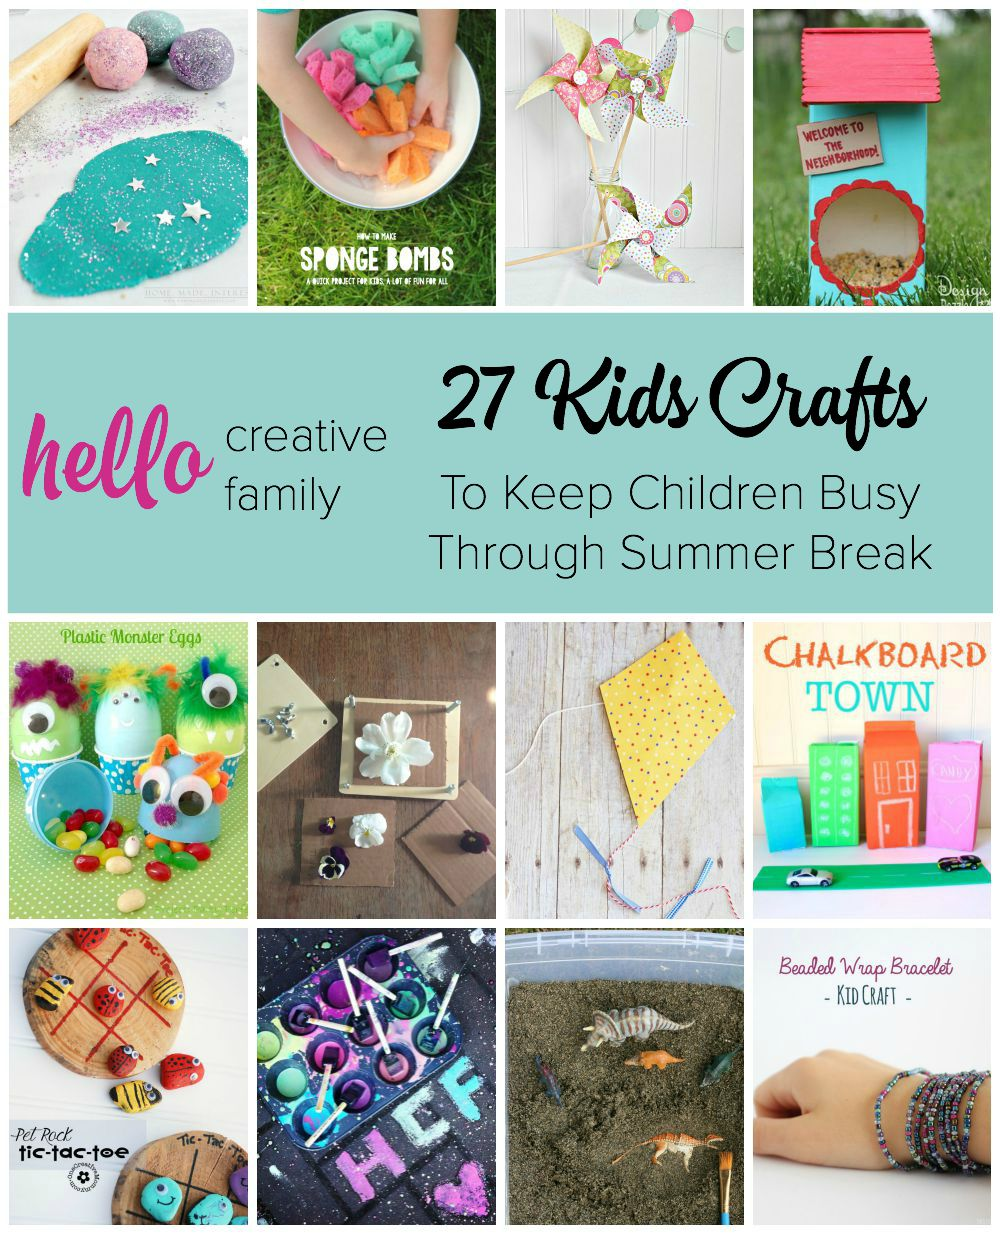 27 Kids Crafts To Keep Children Busy Through Summer Break Hello